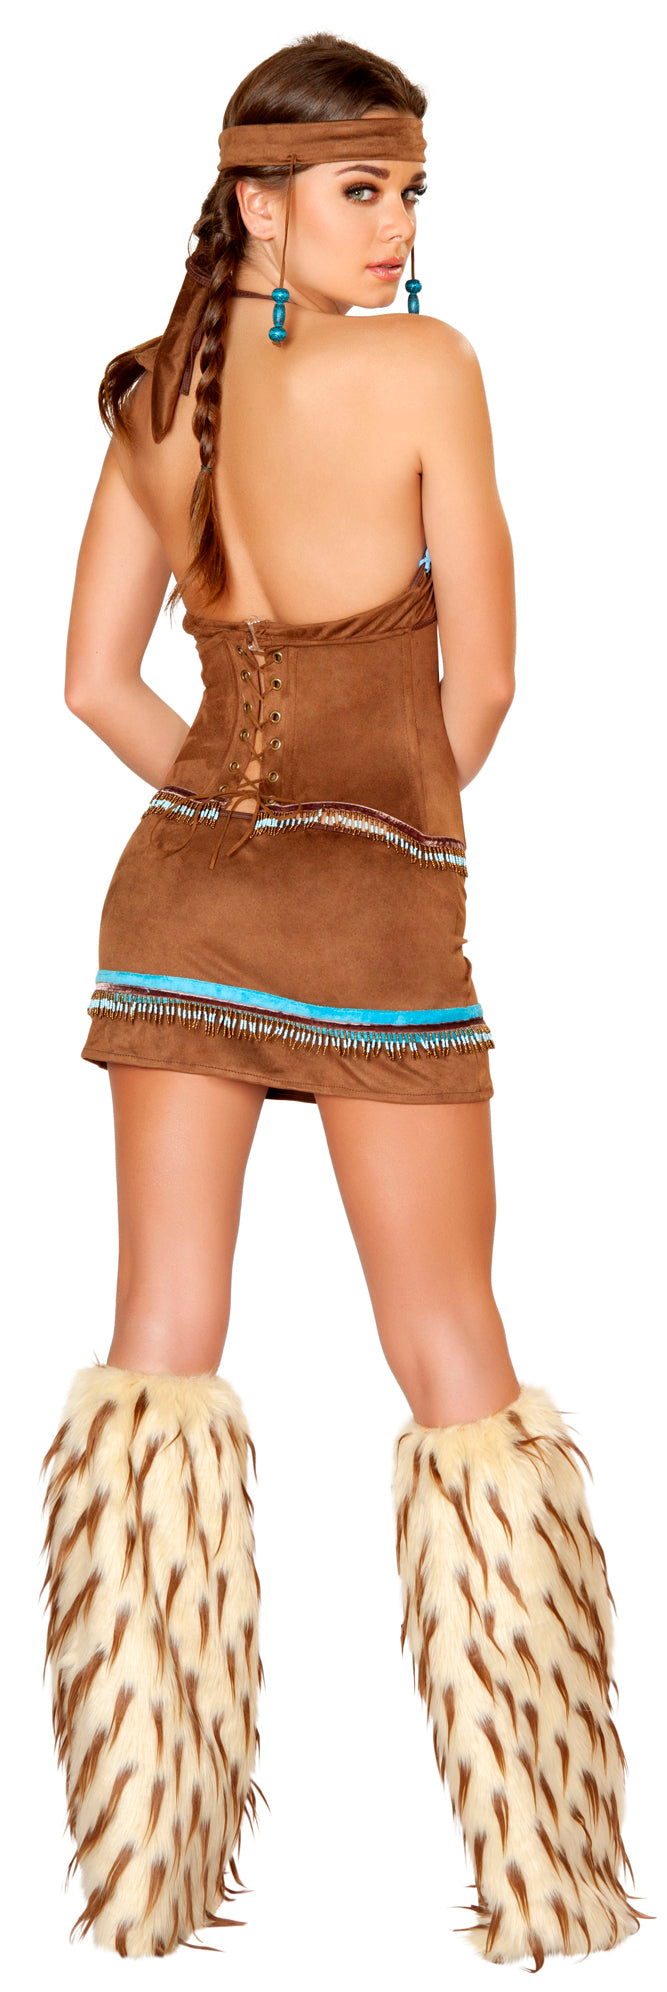 Native American Babe Costume Back RM4430